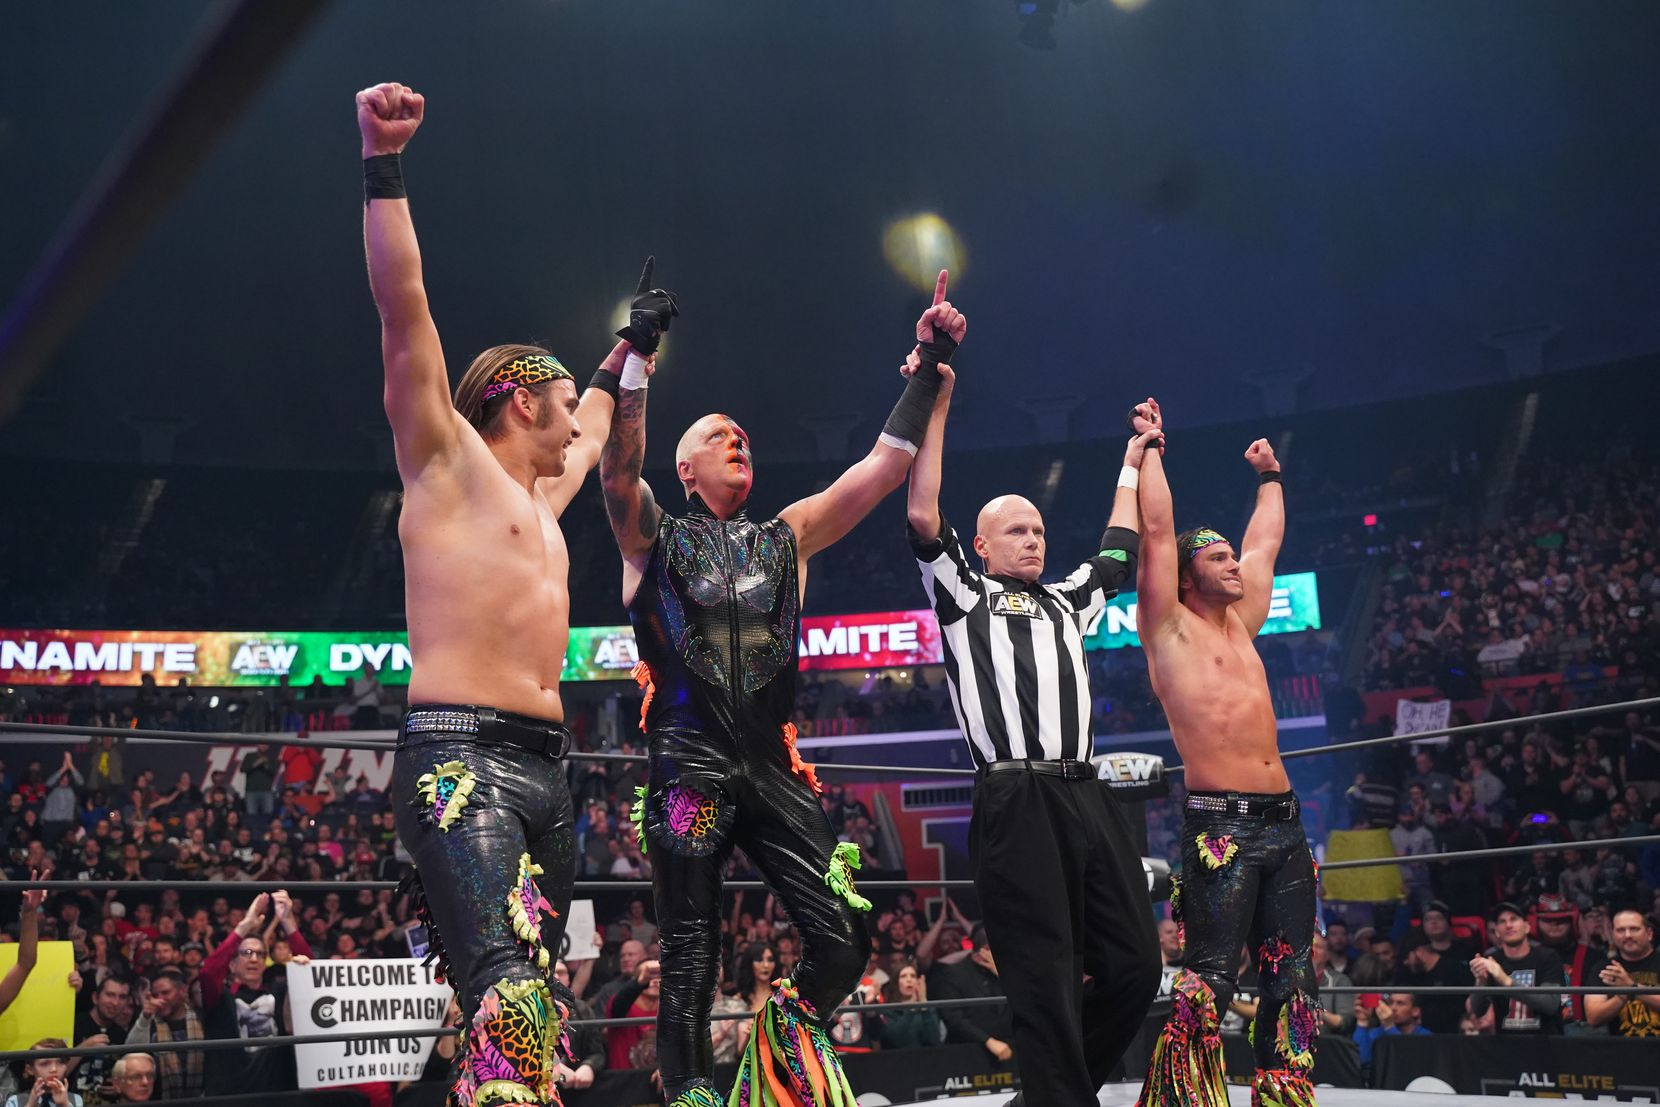 Dustin Rhodes celebrates with The Young Bucks after a victory on AEW Dynamite in Champaign, Illinois.